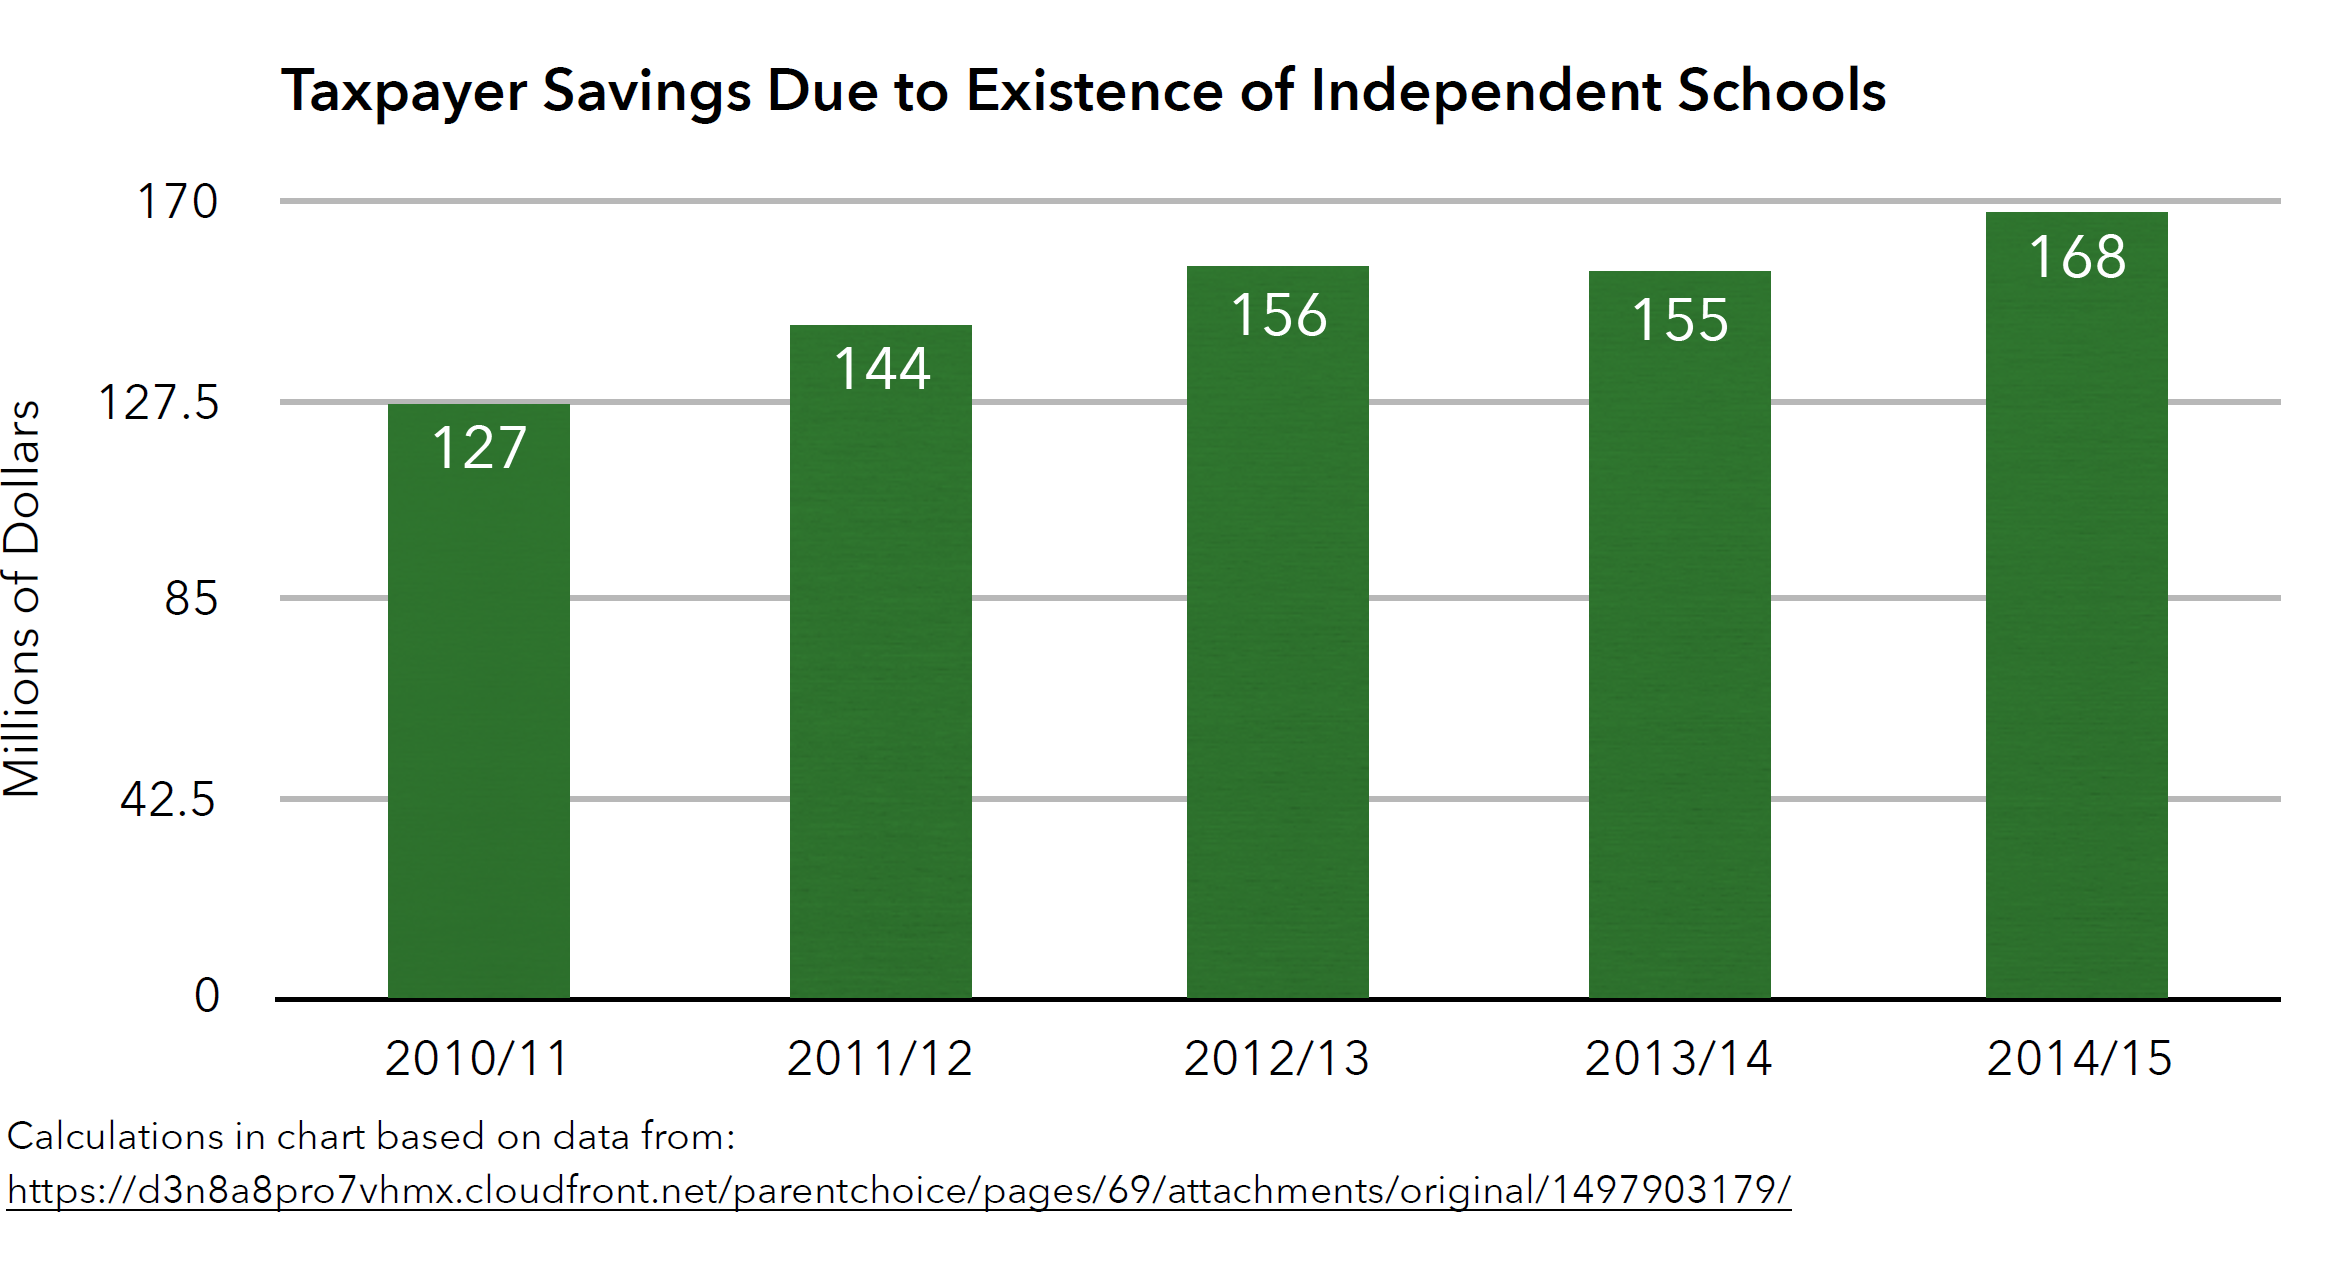 Graph showing tax payer savings due to existence of independent schools